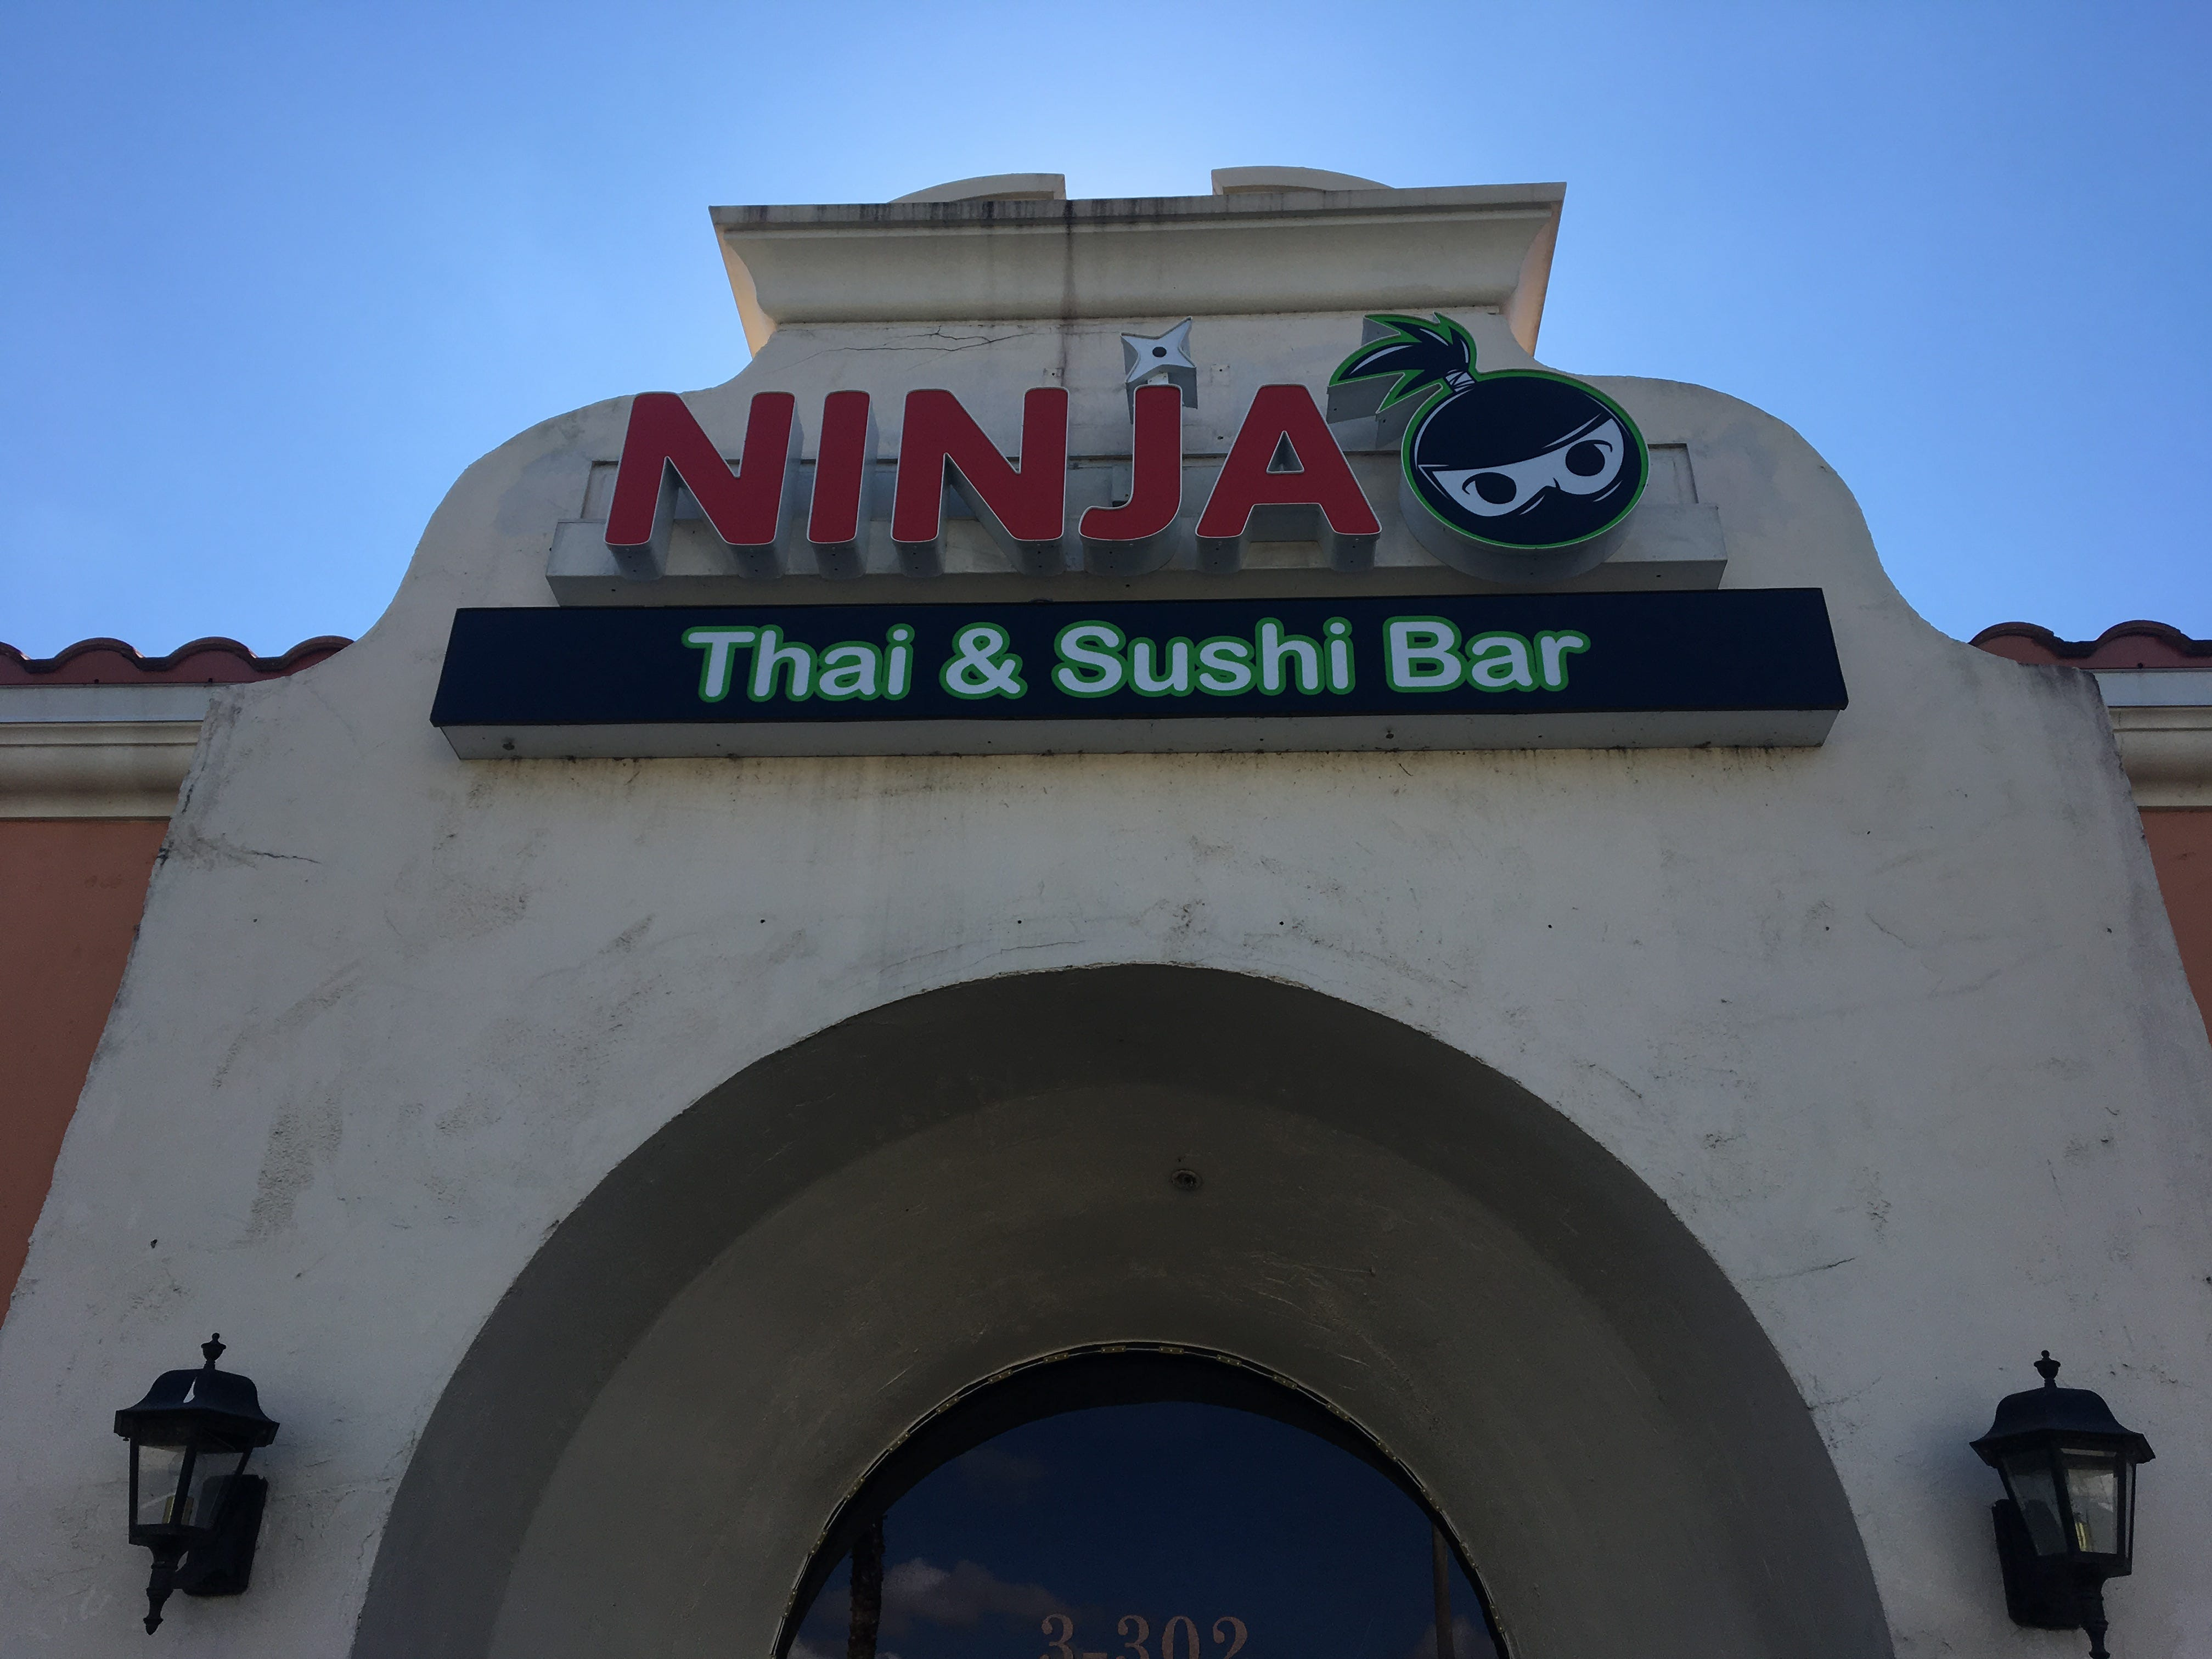 Ninja Thai & Sushi Bar opened in the former Koreana space in south Fort Myers in May.